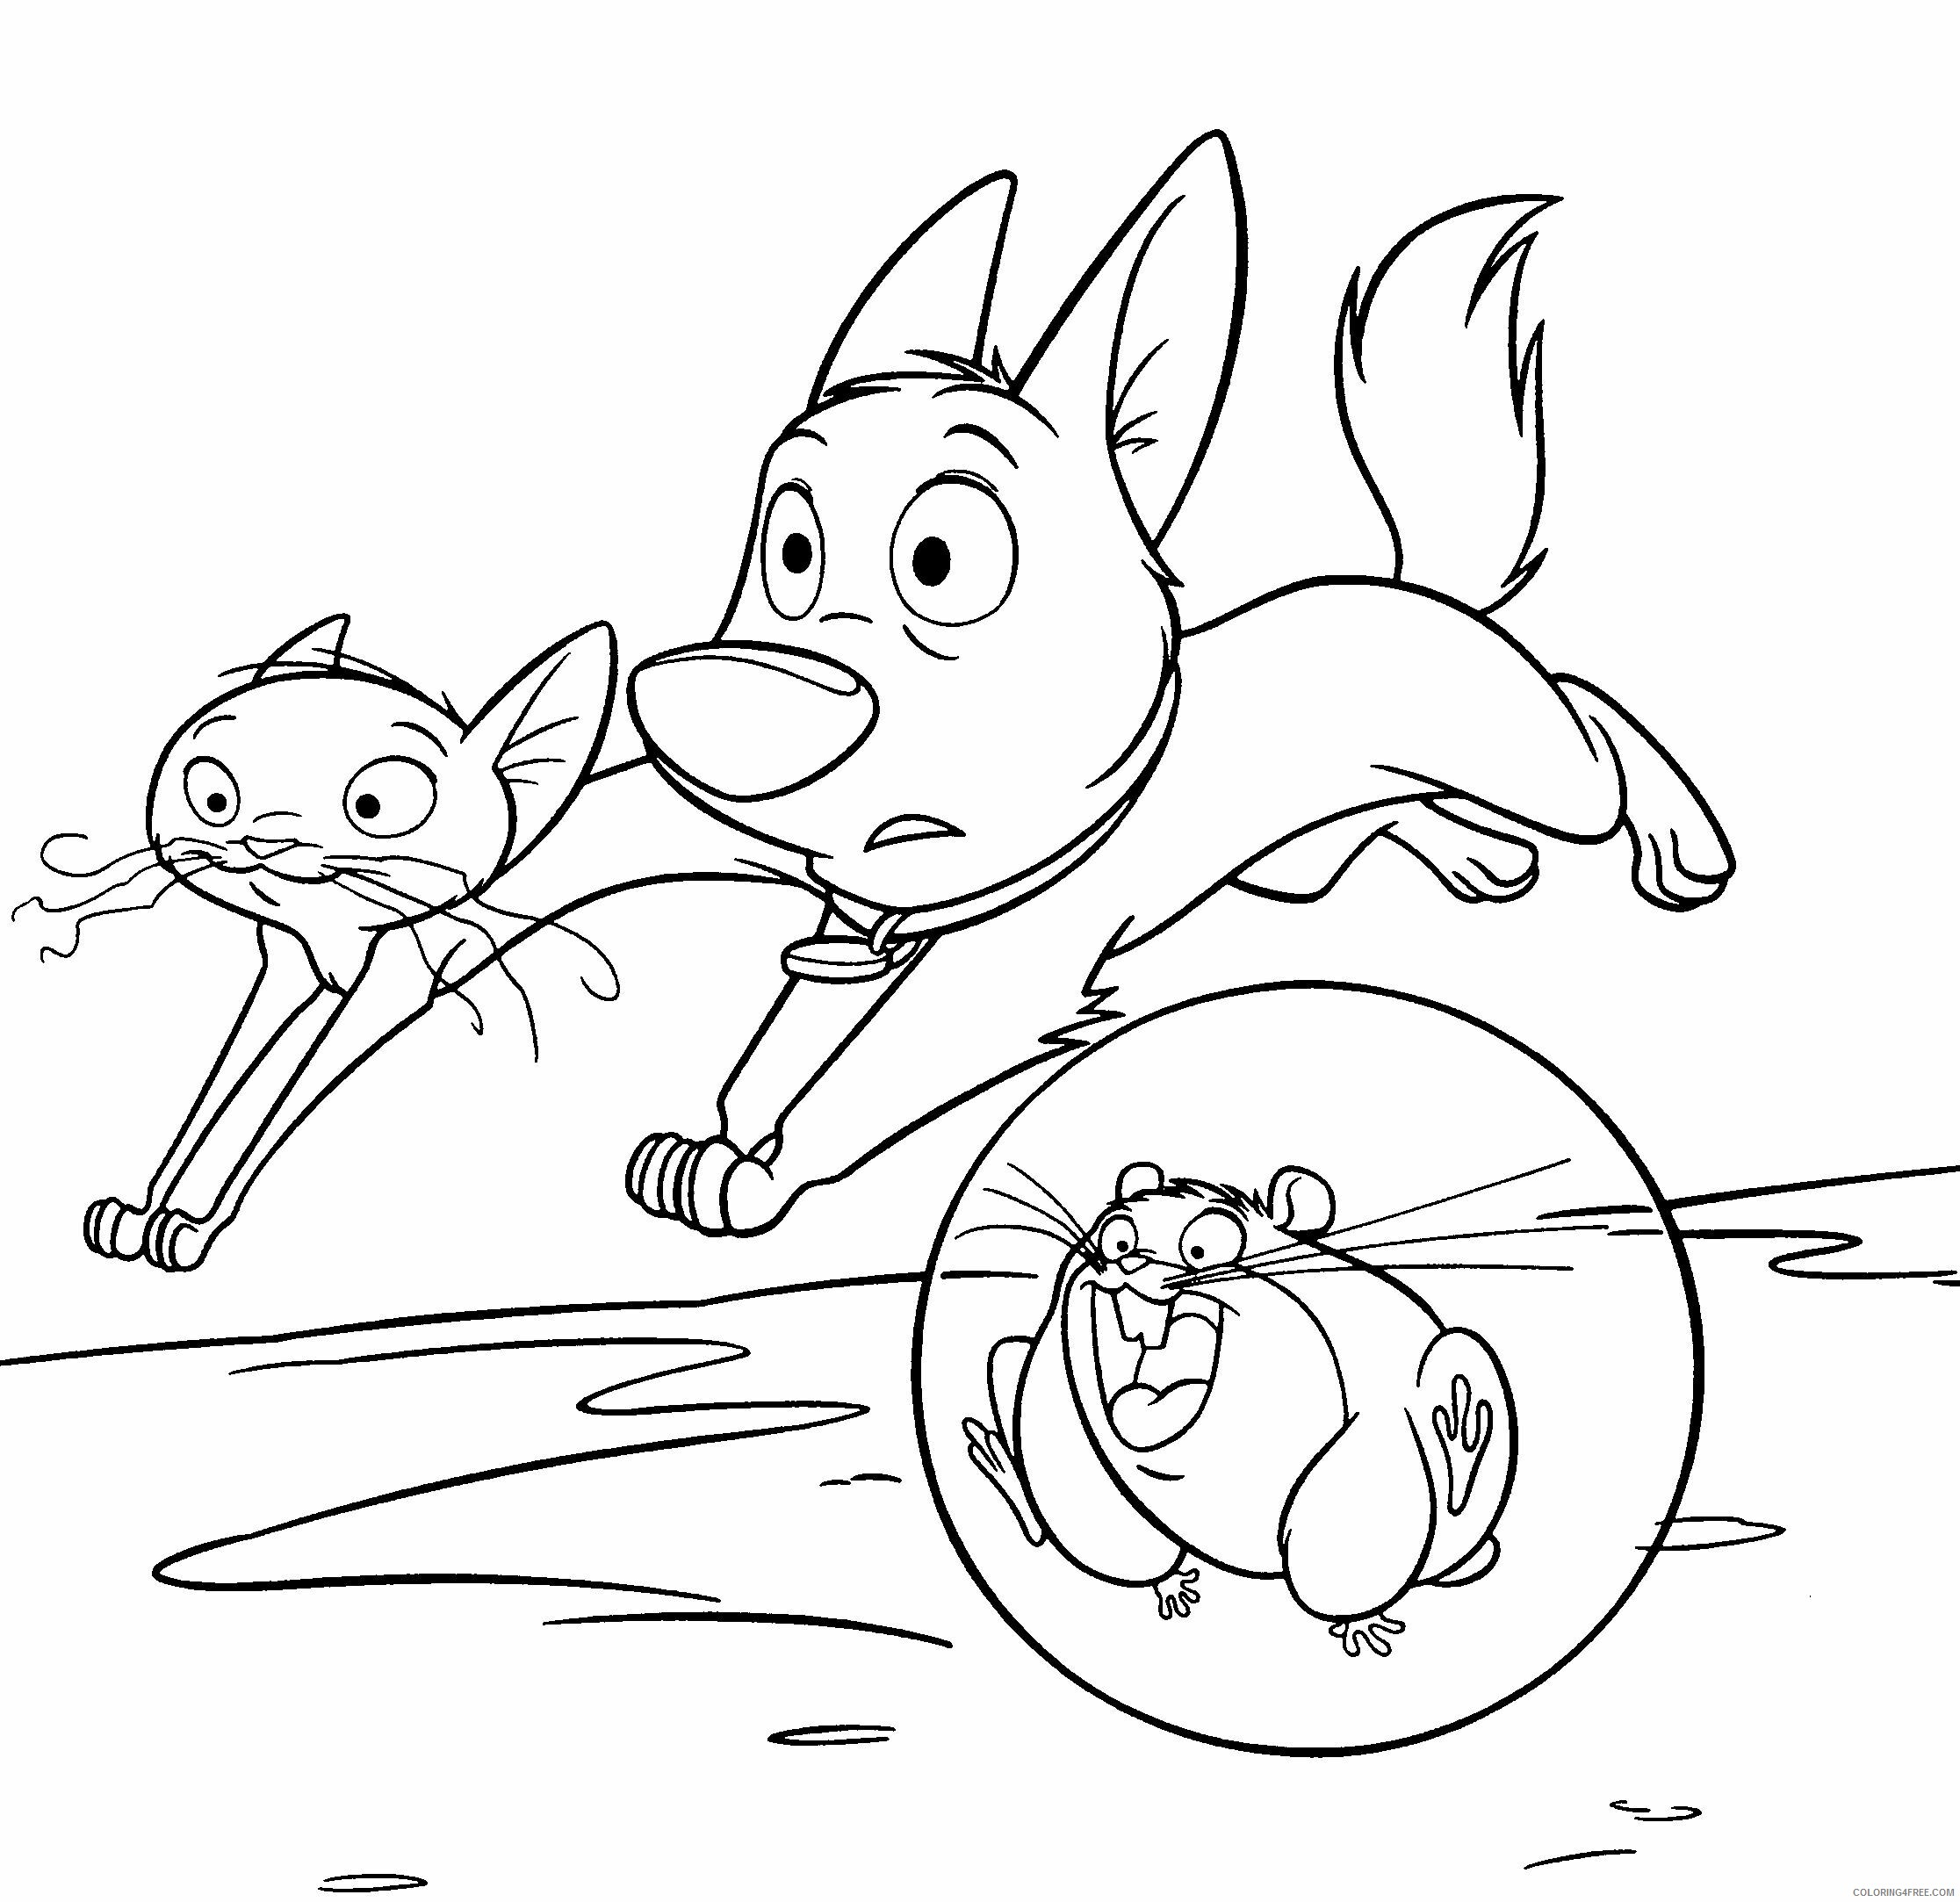 Bolt Coloring Pages TV Film Bolt Movie Characters Printable 2020 01235 Coloring4free